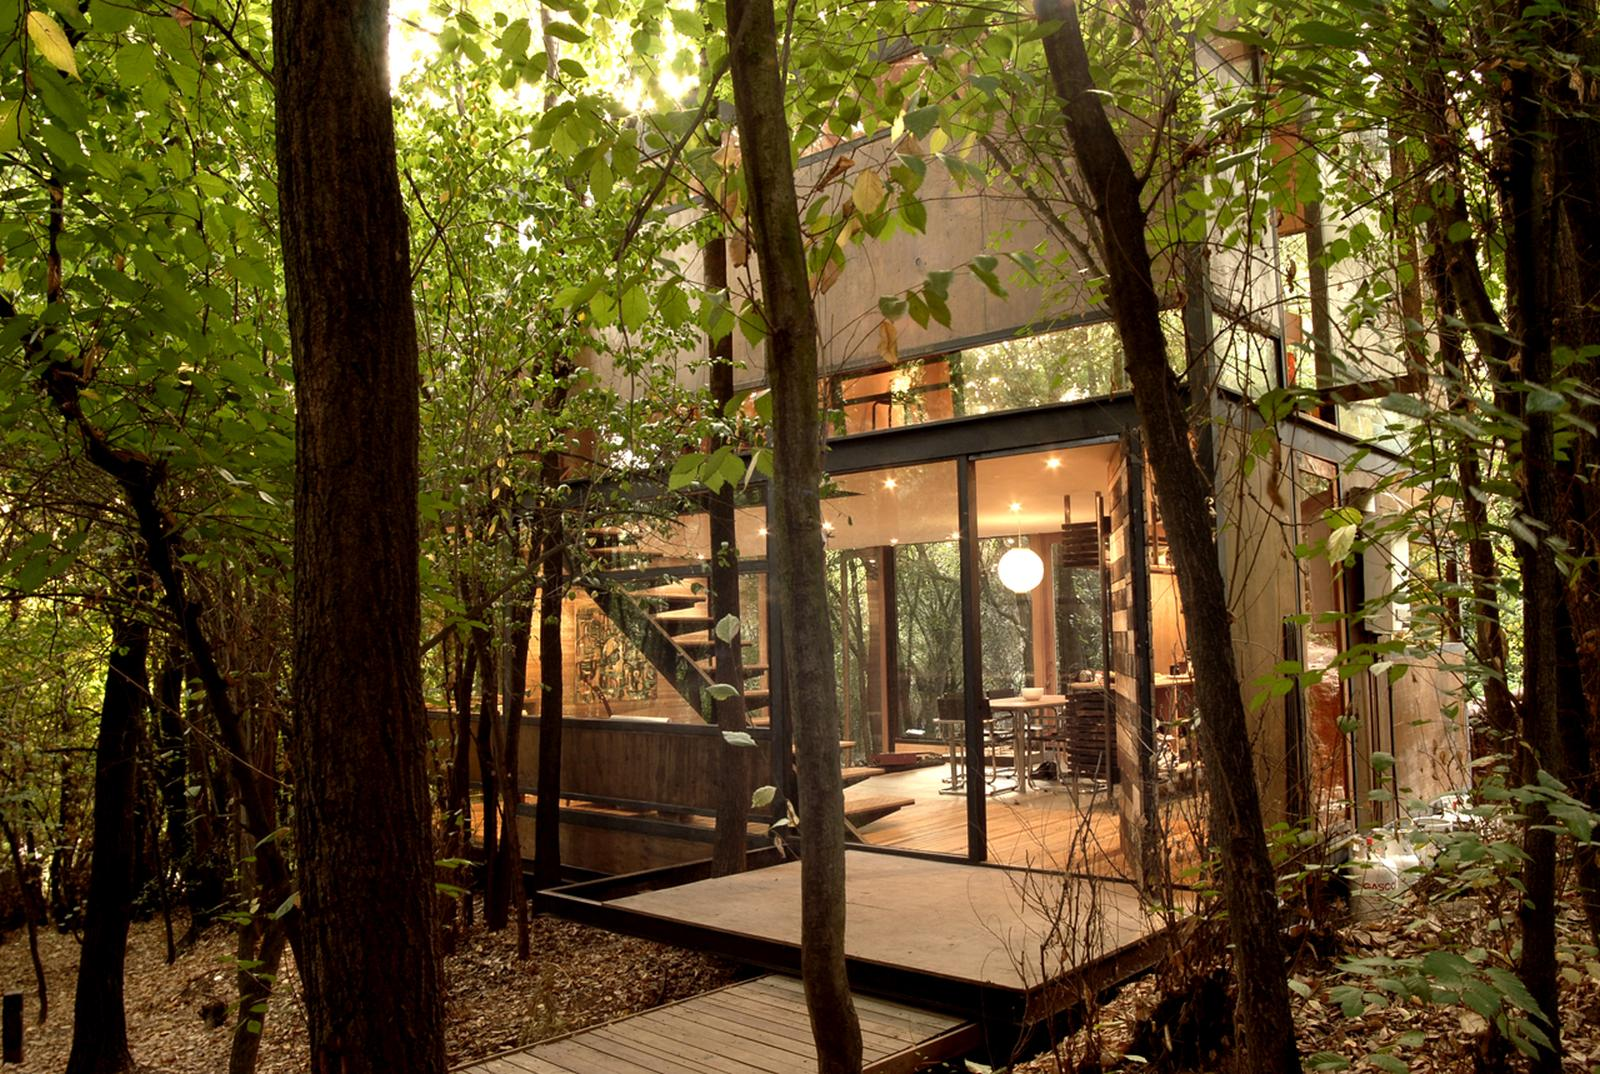 Casa Apolo 11, A Secluded Forest Home | Parra + Edwards